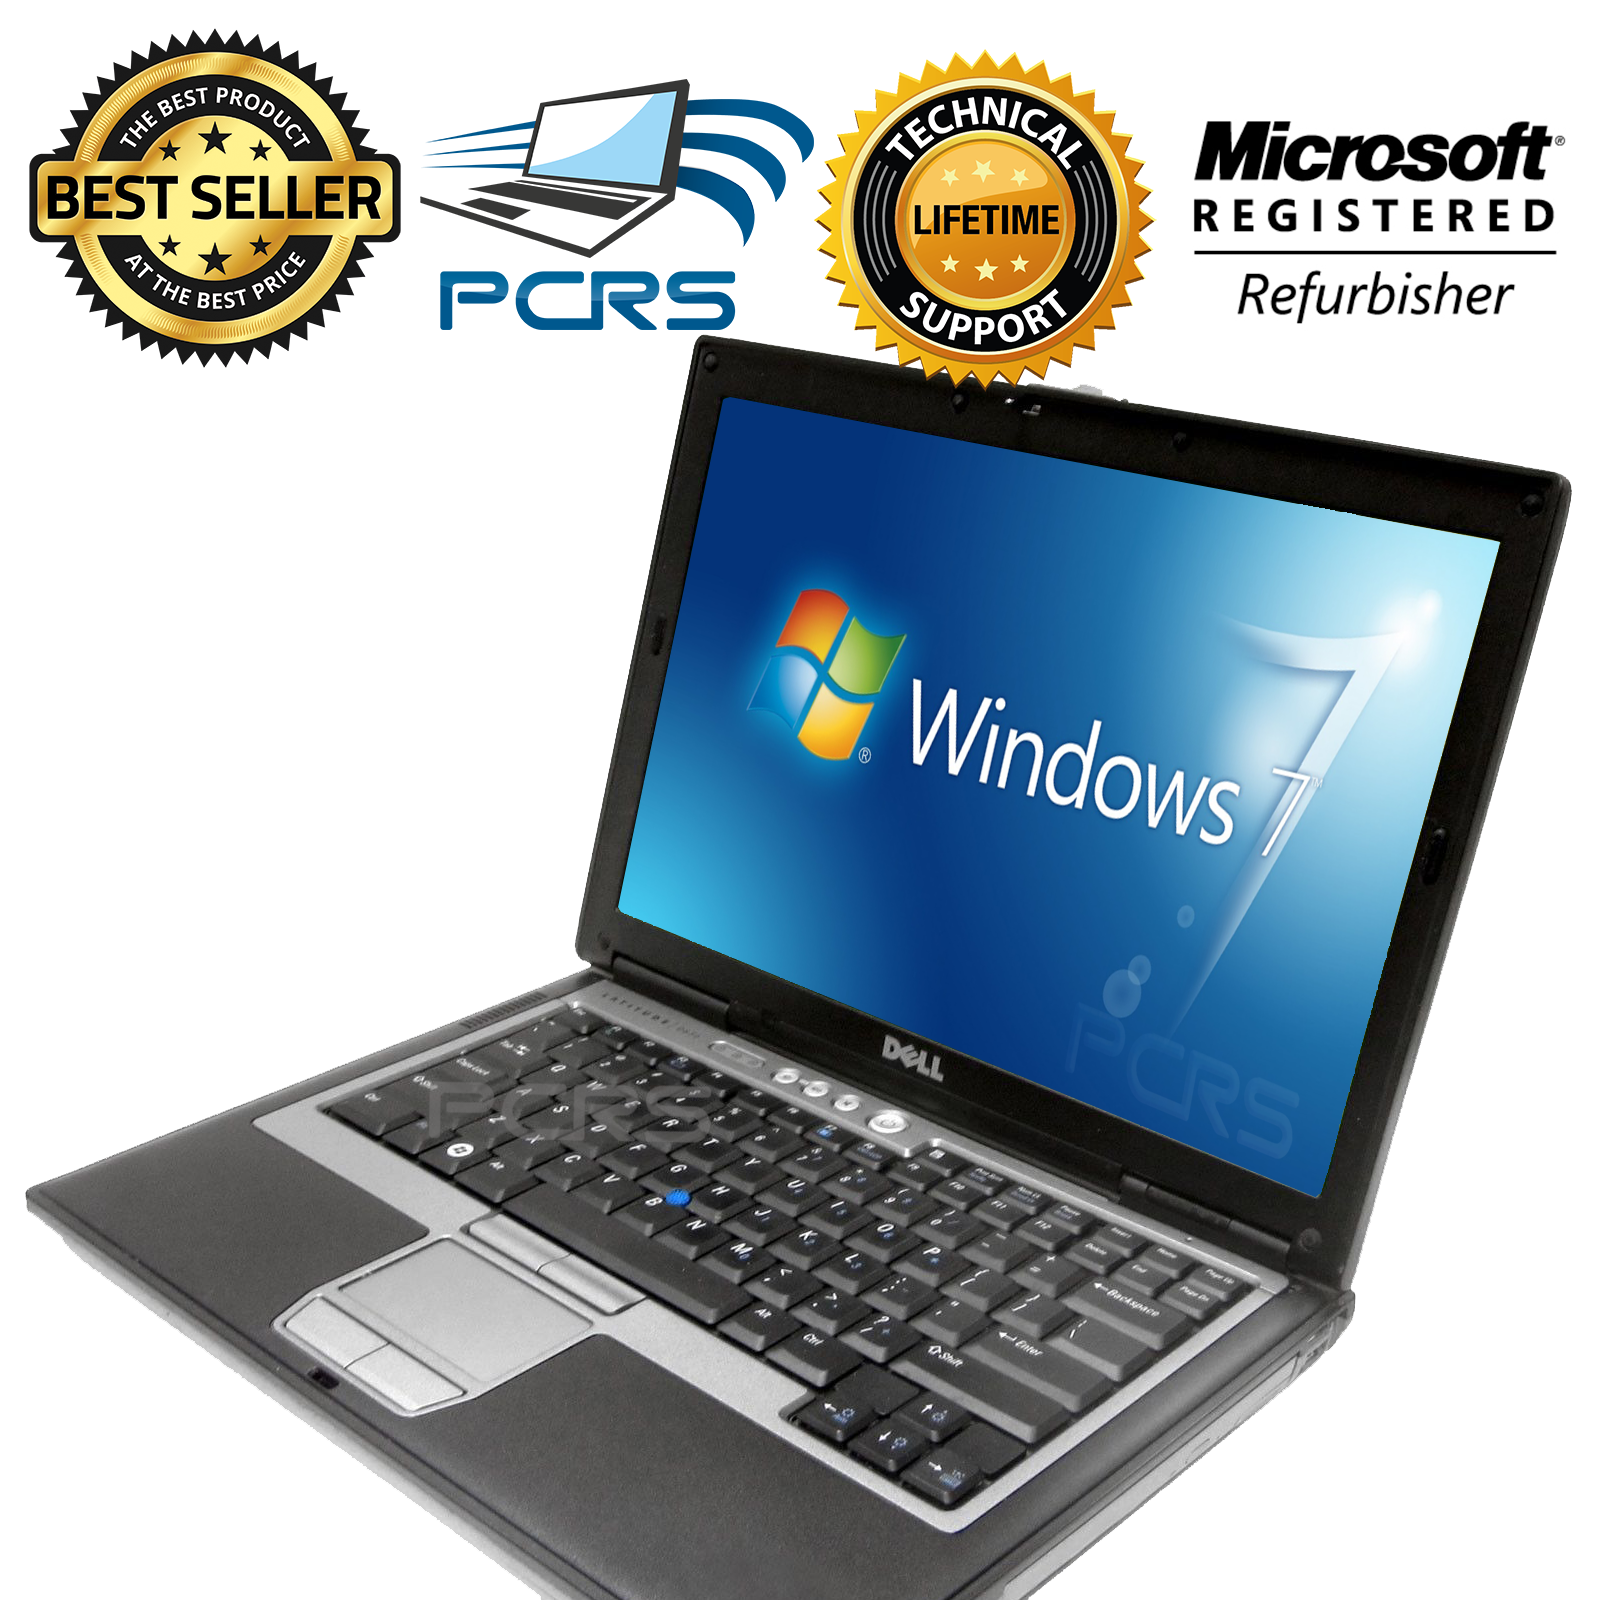 $123.98 - DELL Latitude Laptop Computer Windows Intel Core 2 Duo DVD WiFi Notebook HD